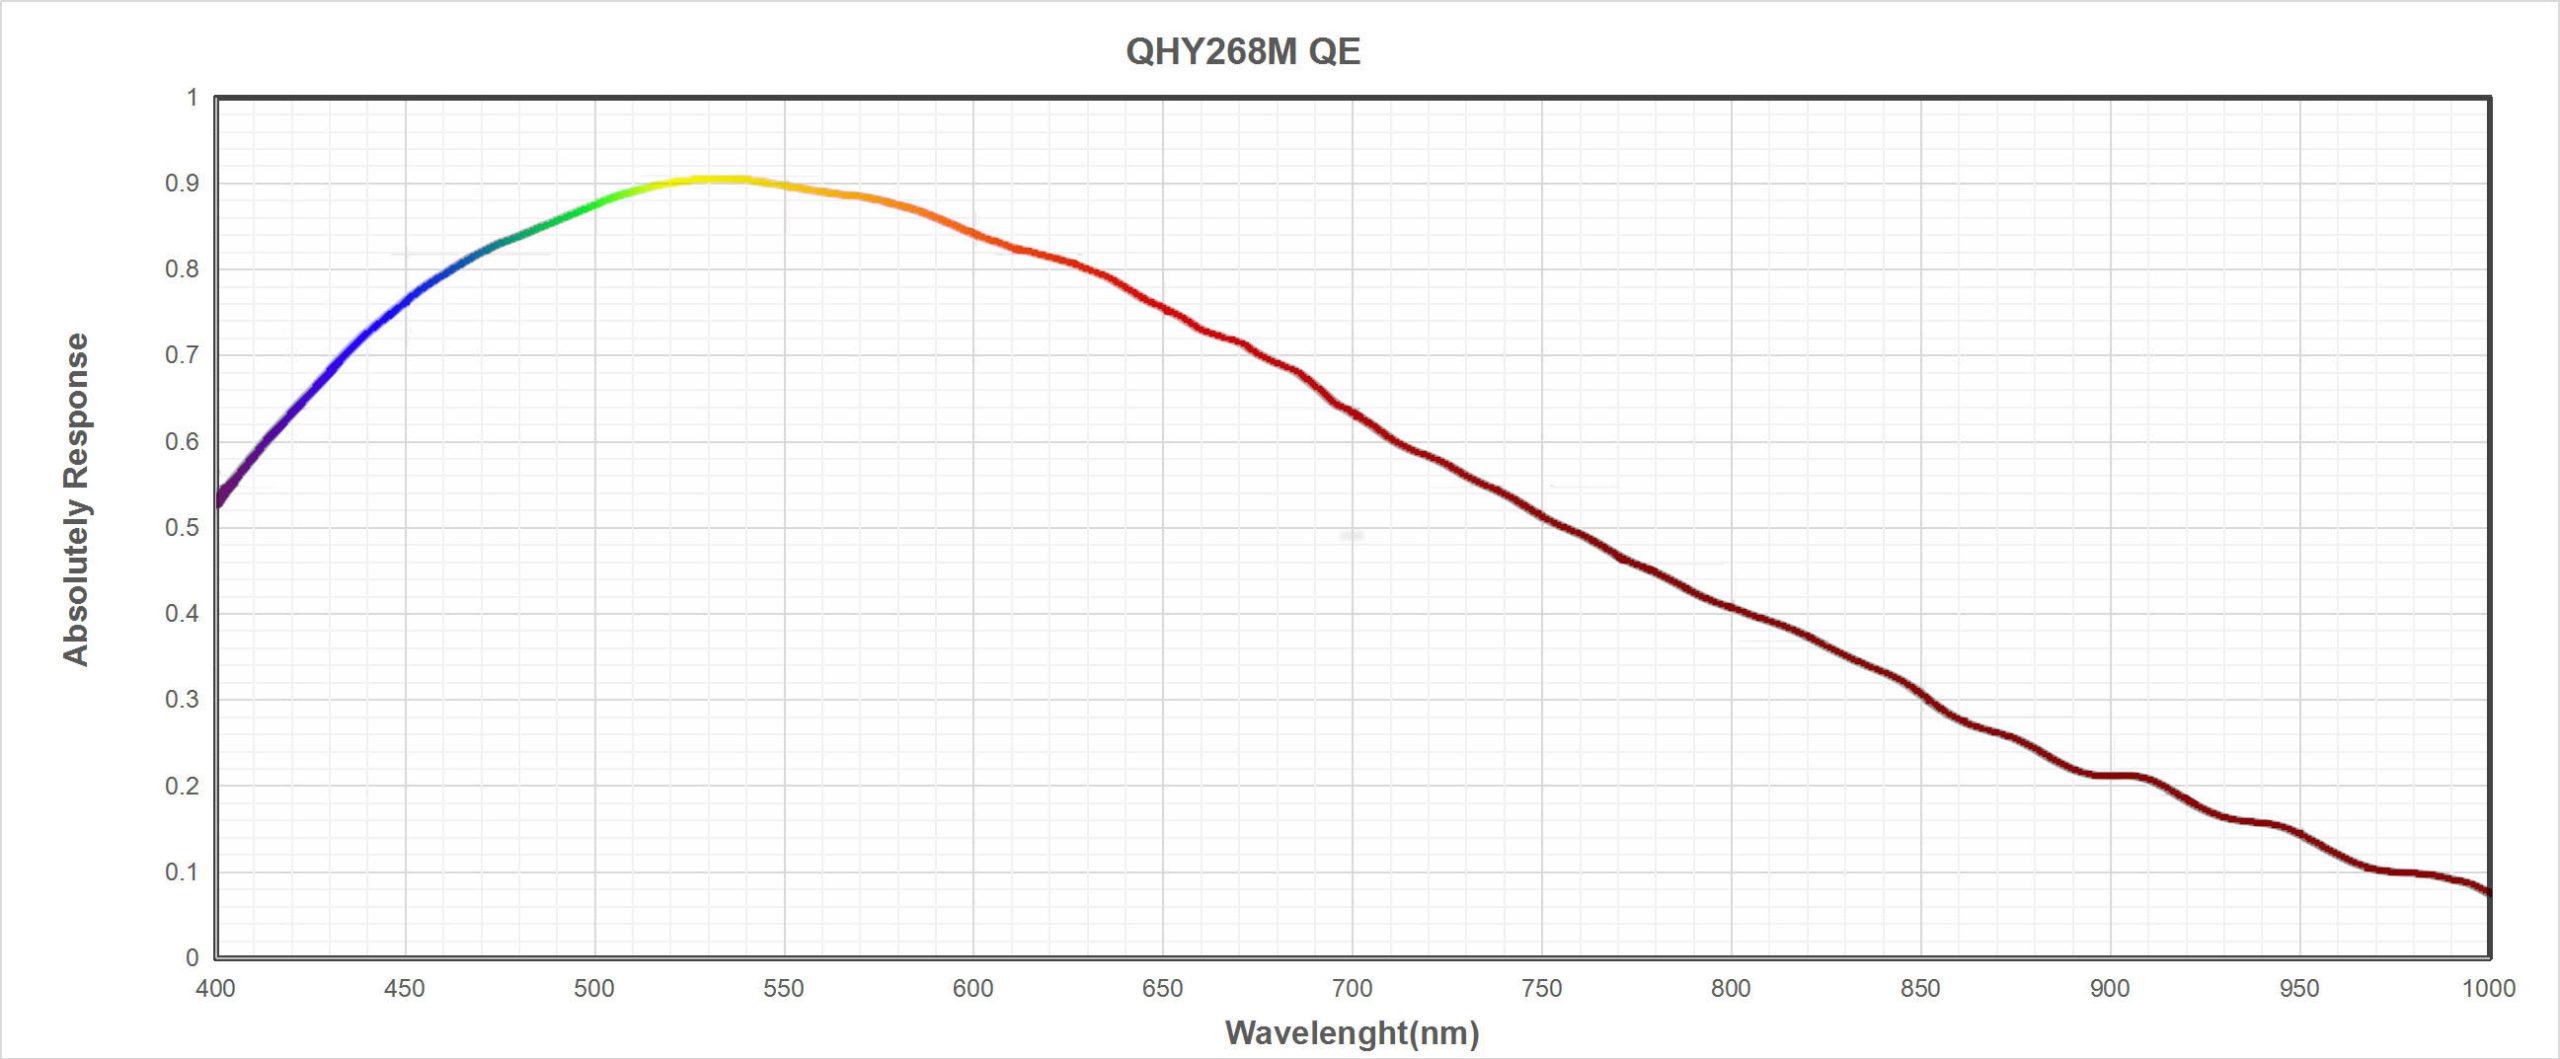 Measuring the absolute QE of the QHY268M